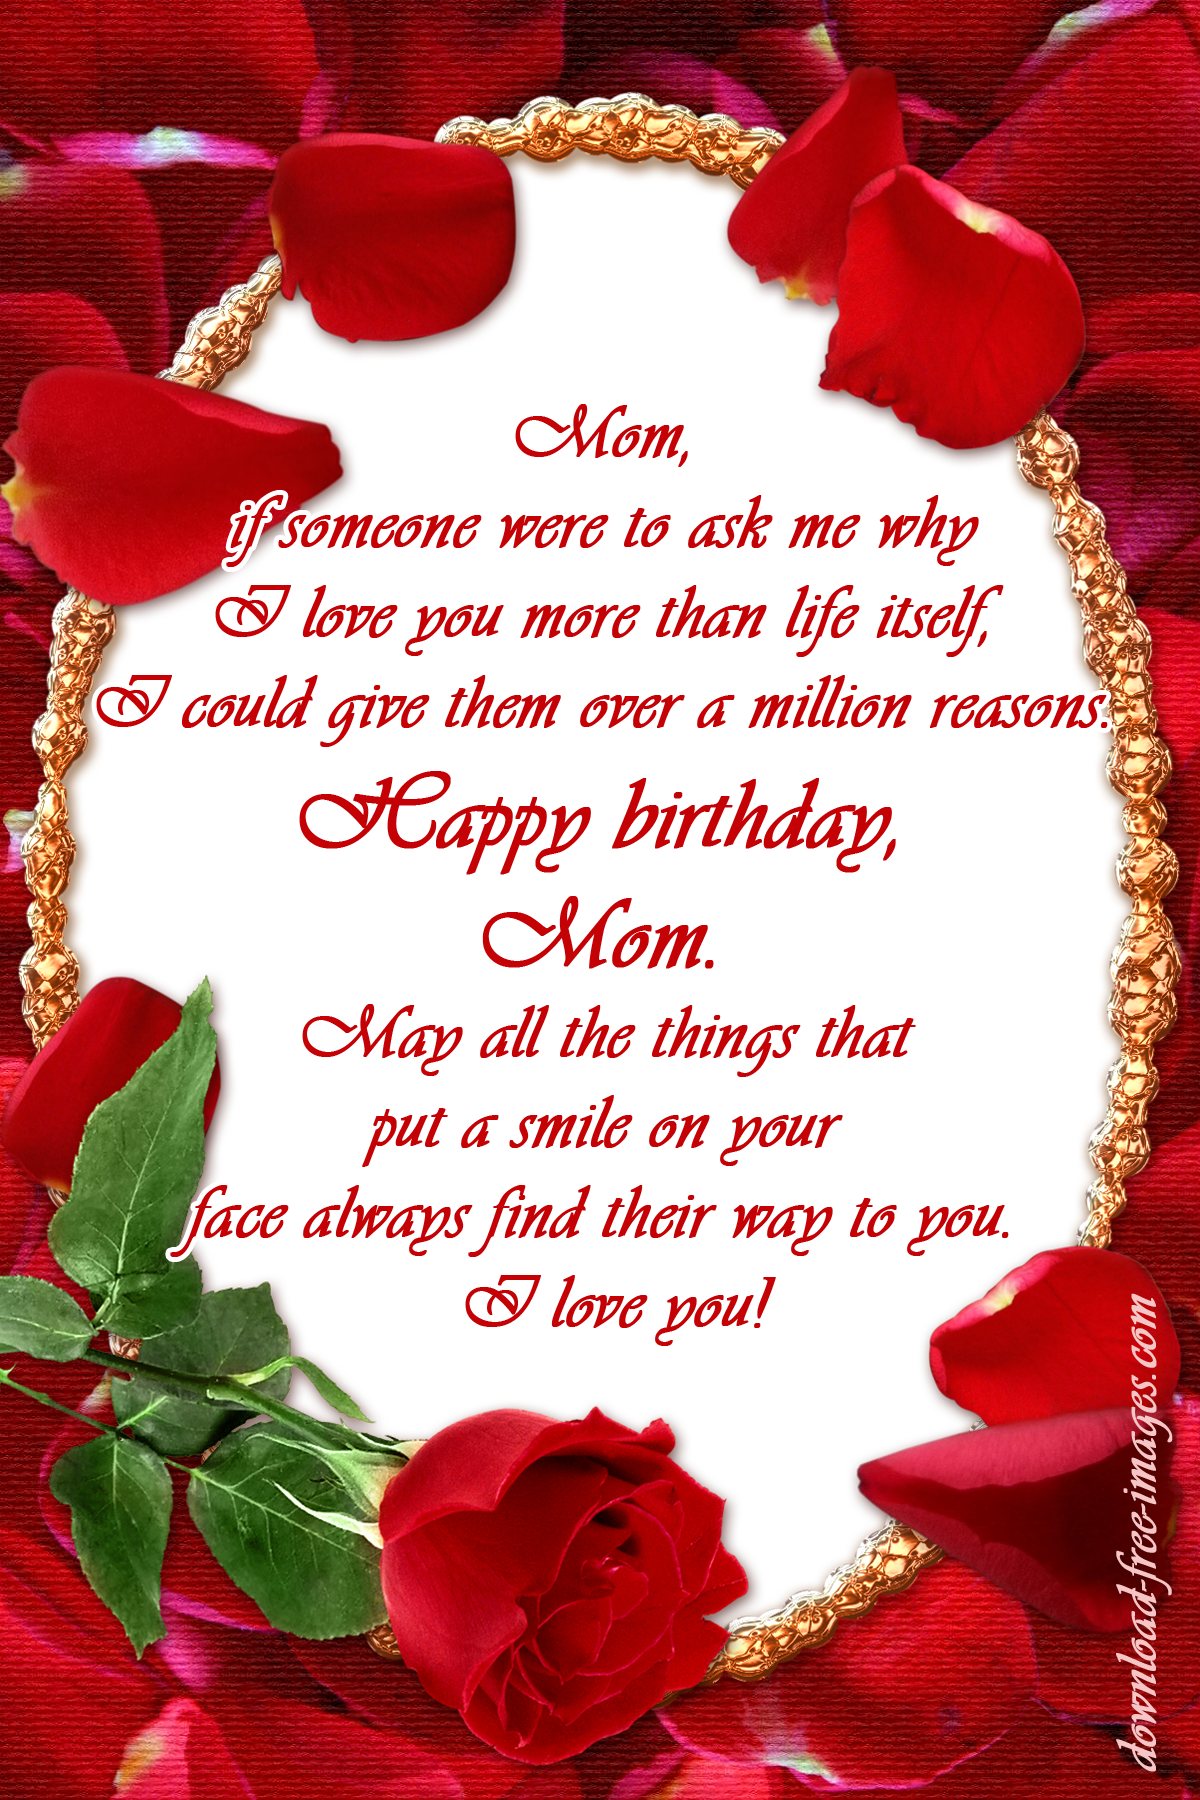 Happy Birthday Wishes For My Mom I Love You Red Roses Ecard The Best Greeting Card